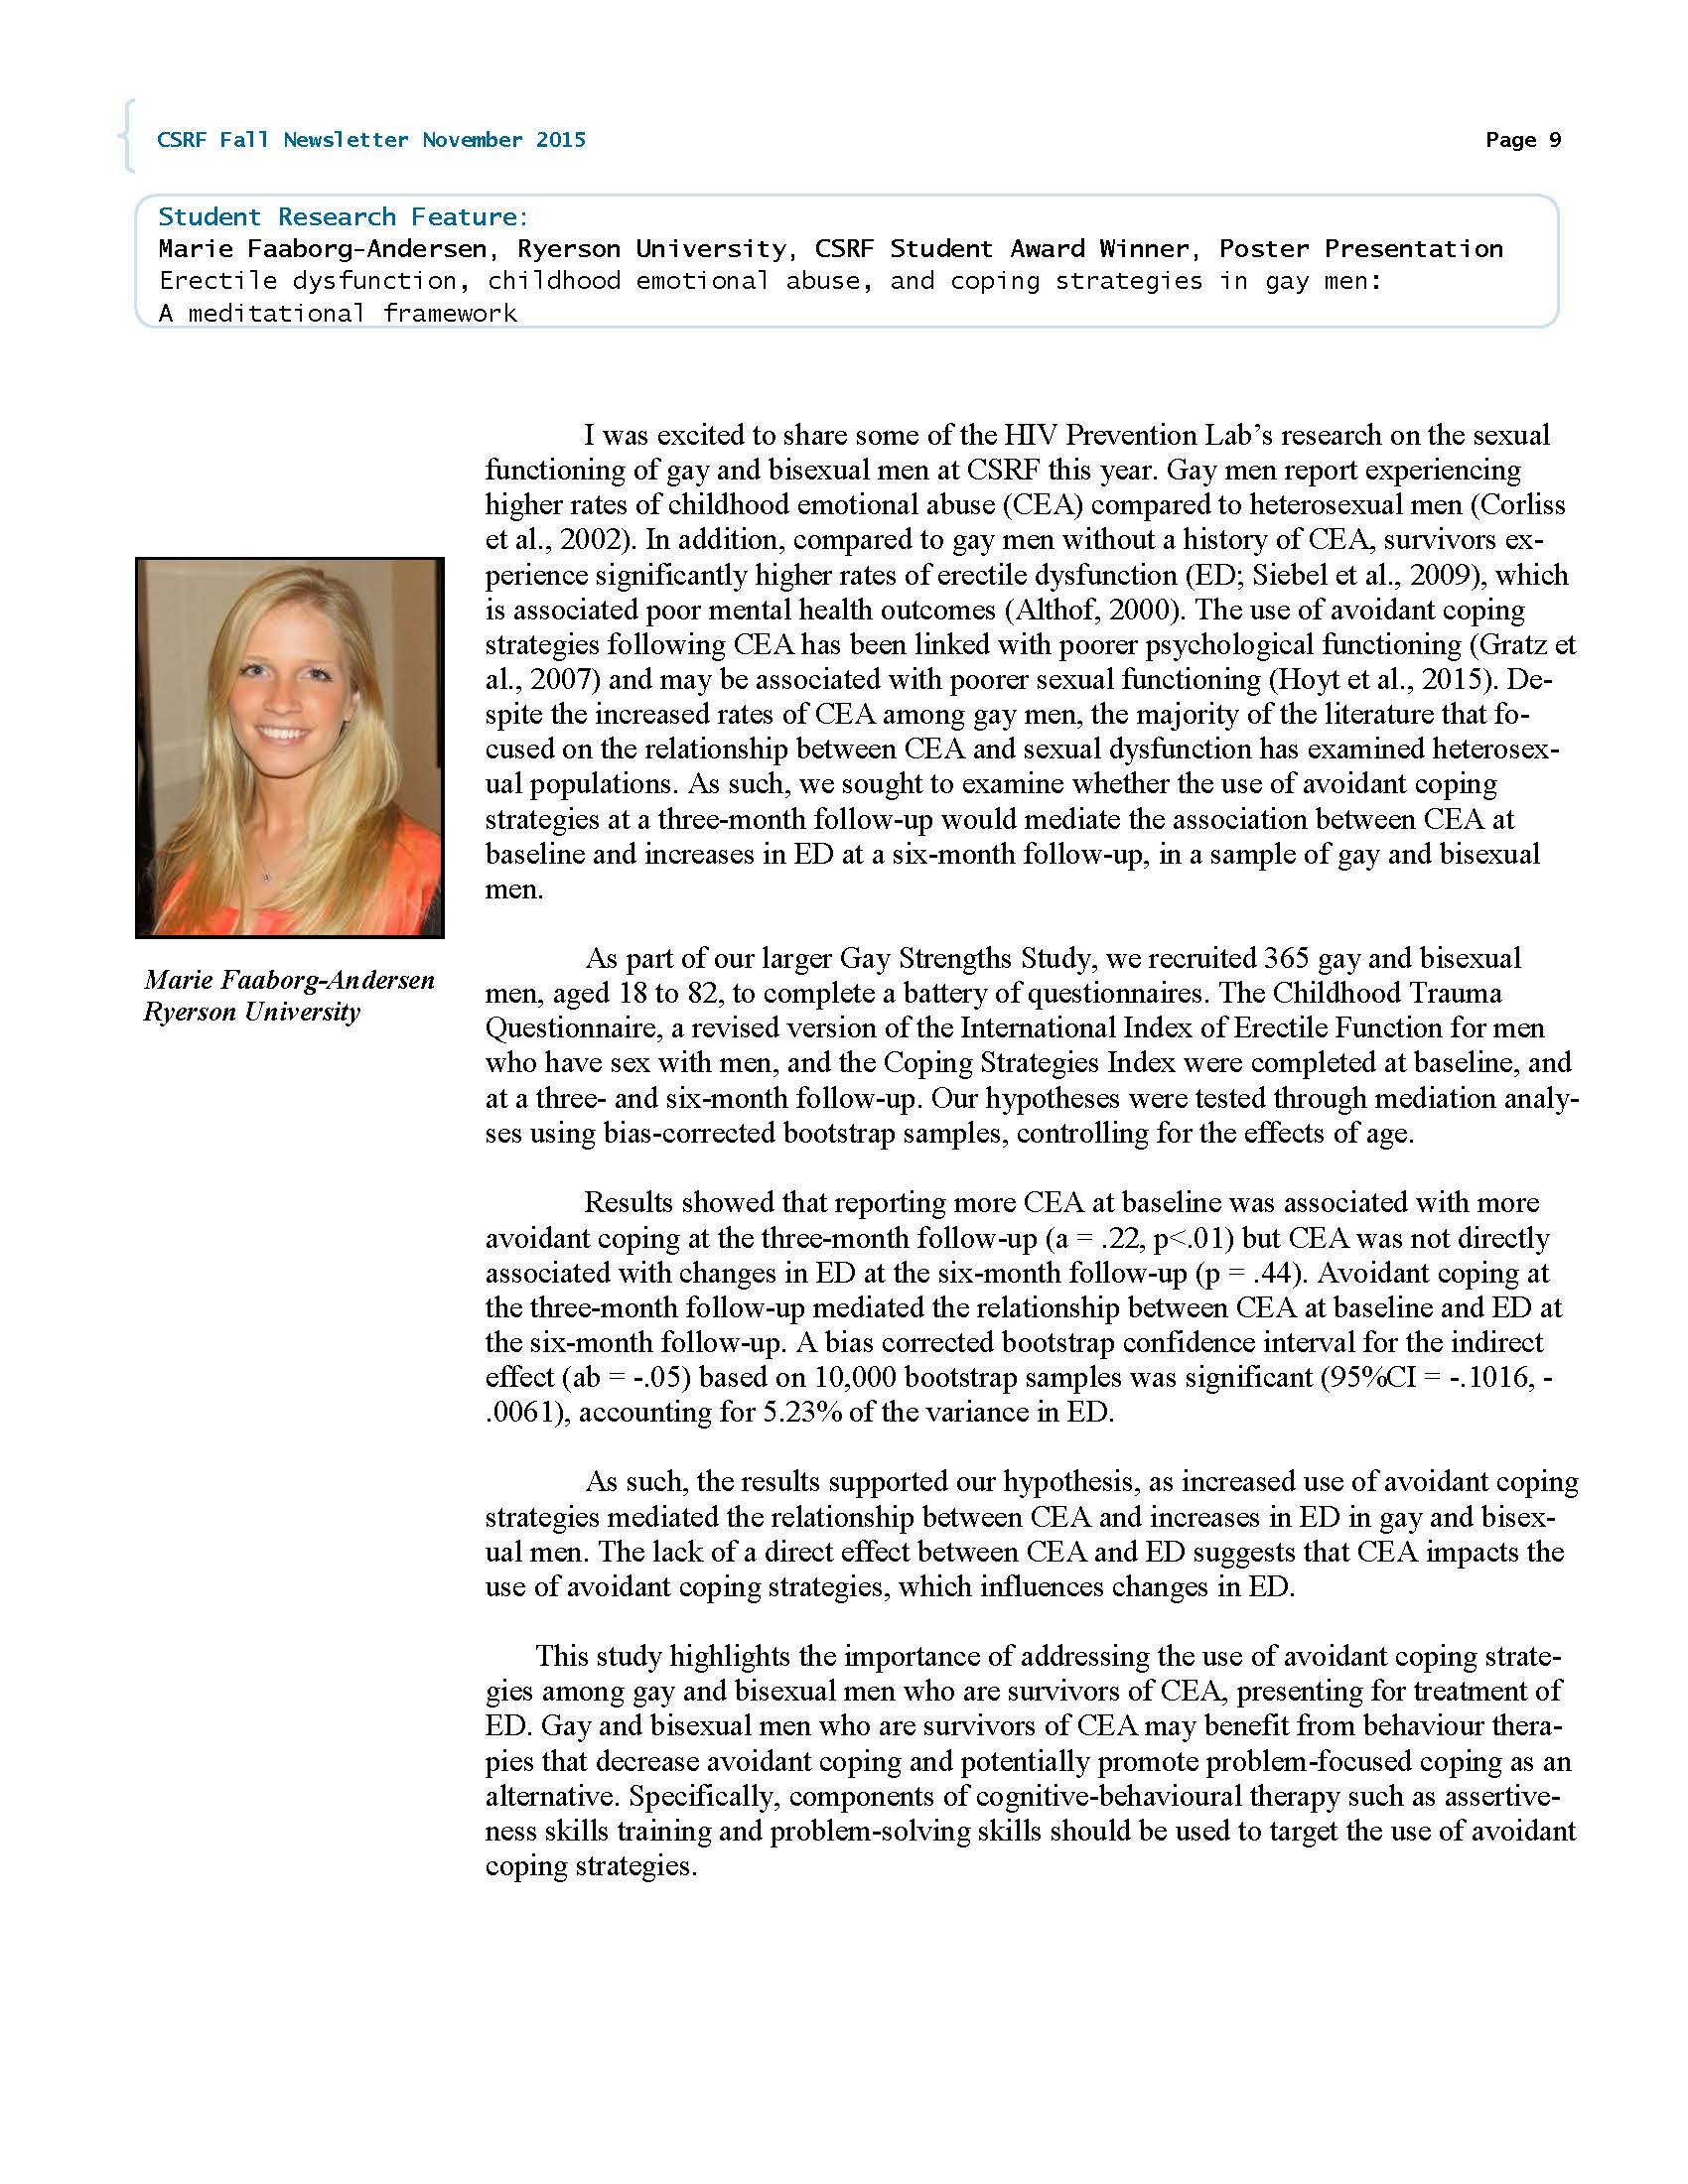 CSRF Fall Newsletter 2015_Page_09.jpg